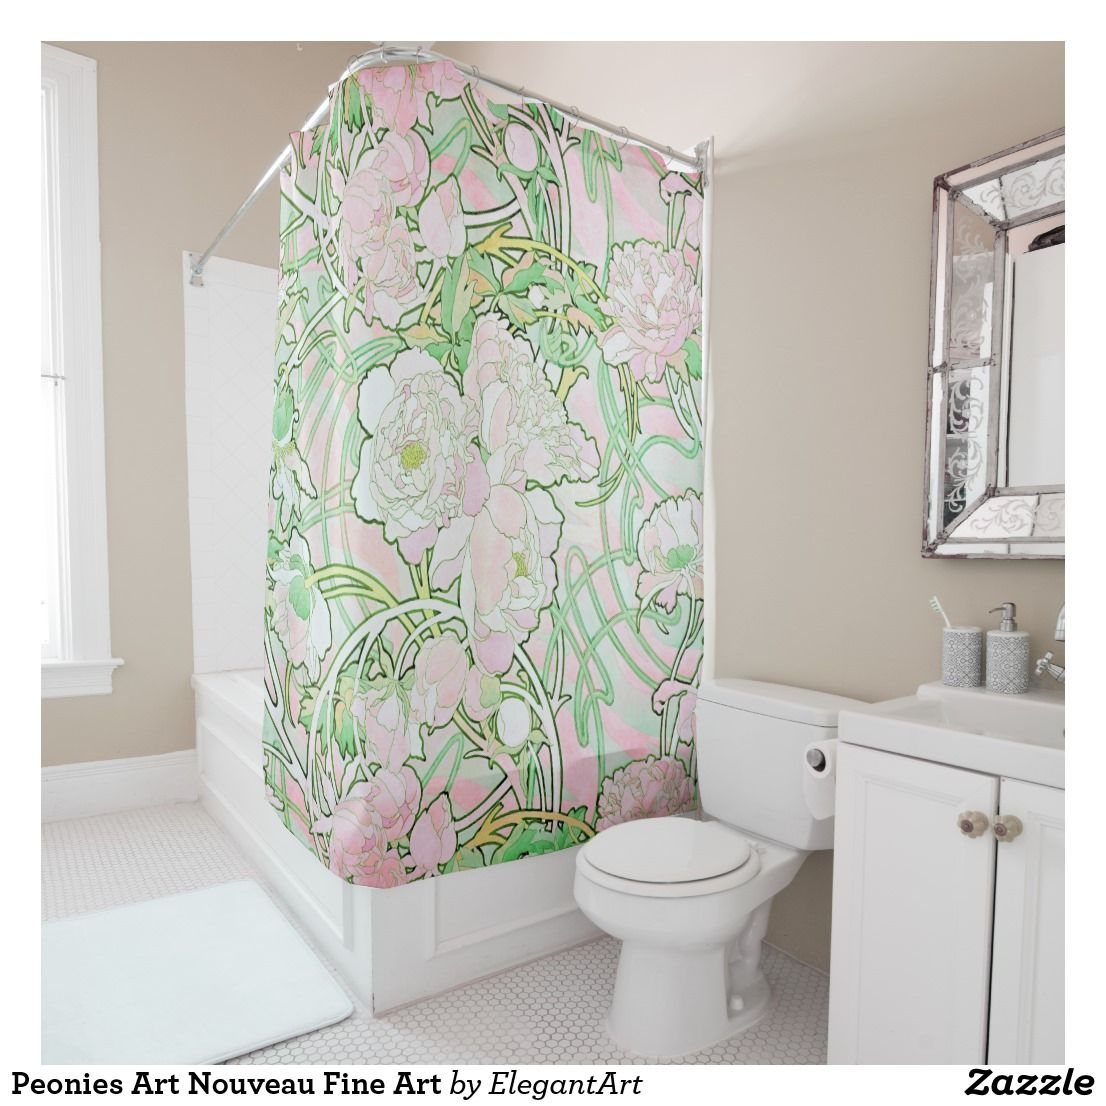 Peonies Art Nouveau Fine Art Shower Curtain Zazzle Com With